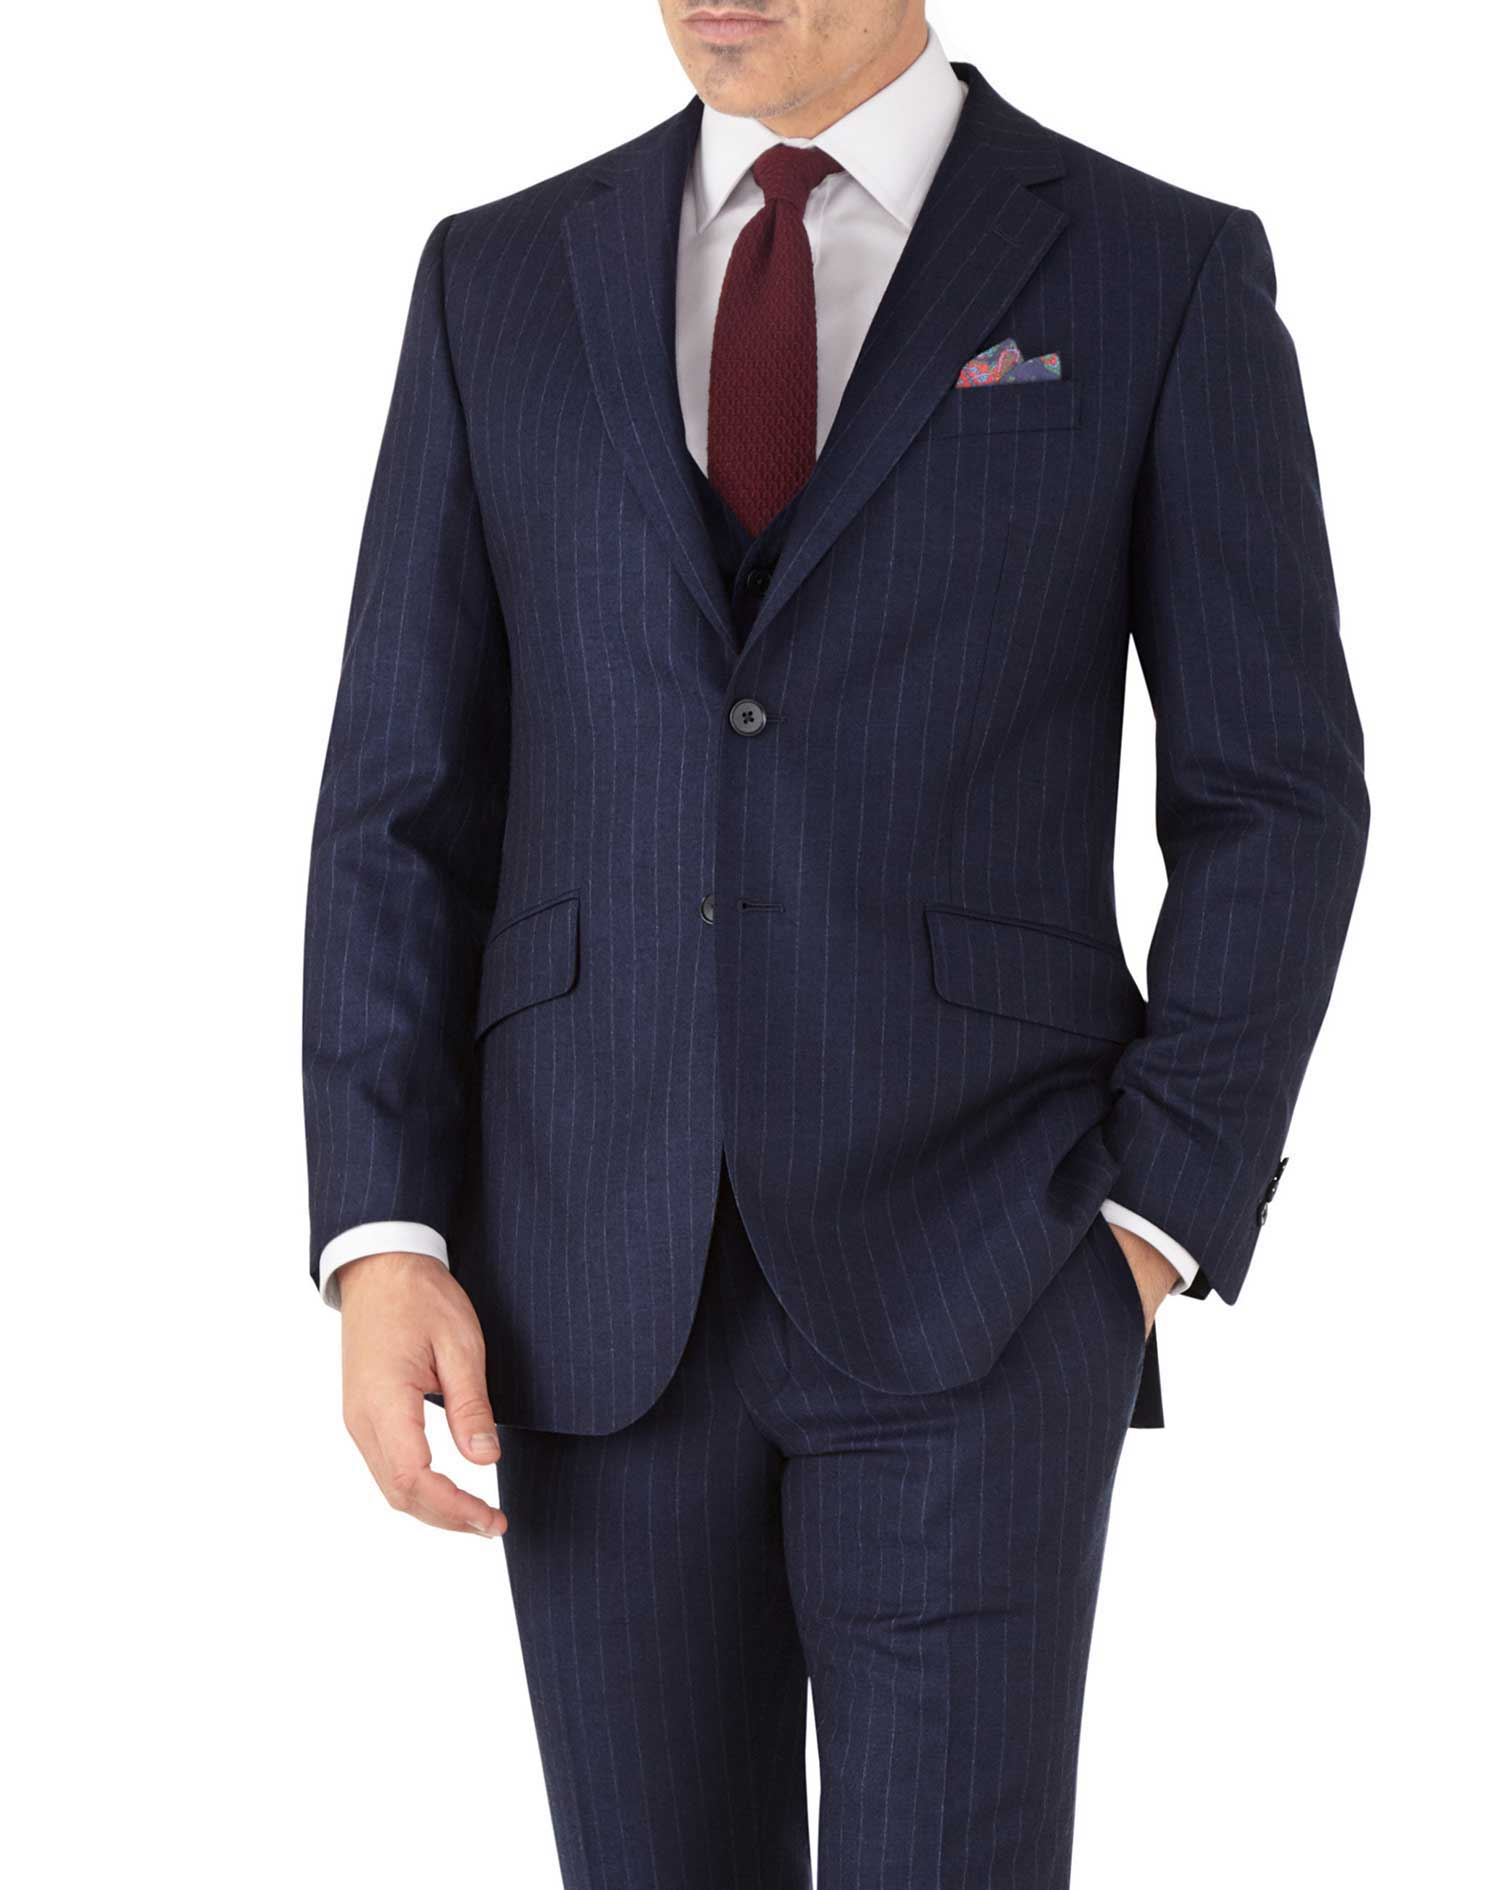 Navy Stripe Slim Fit Flannel Business Suit Wool Jacket Size 40 Short by Charles Tyrwhitt